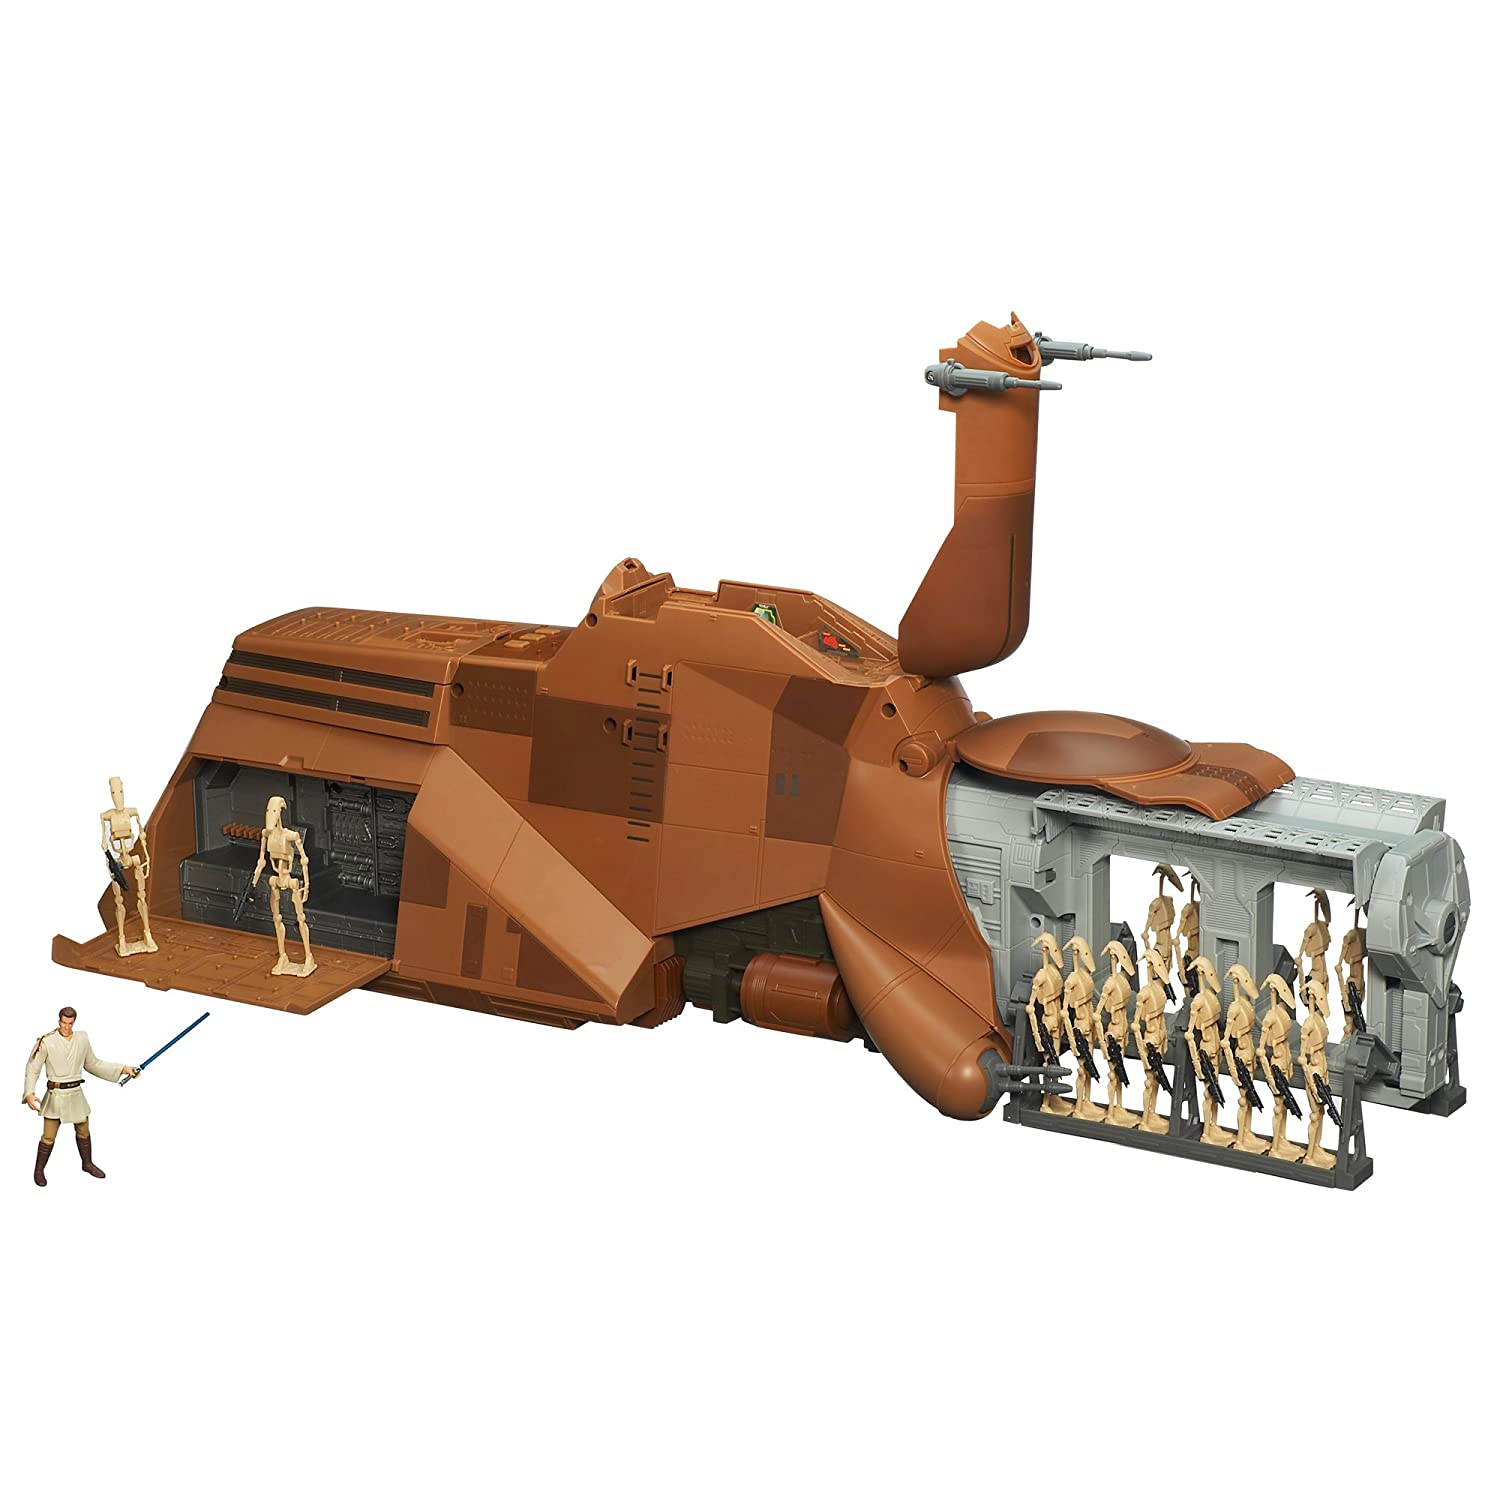 Amazon.com: Star Wars MTT Droid Carrier Vehicle: Toys & Games